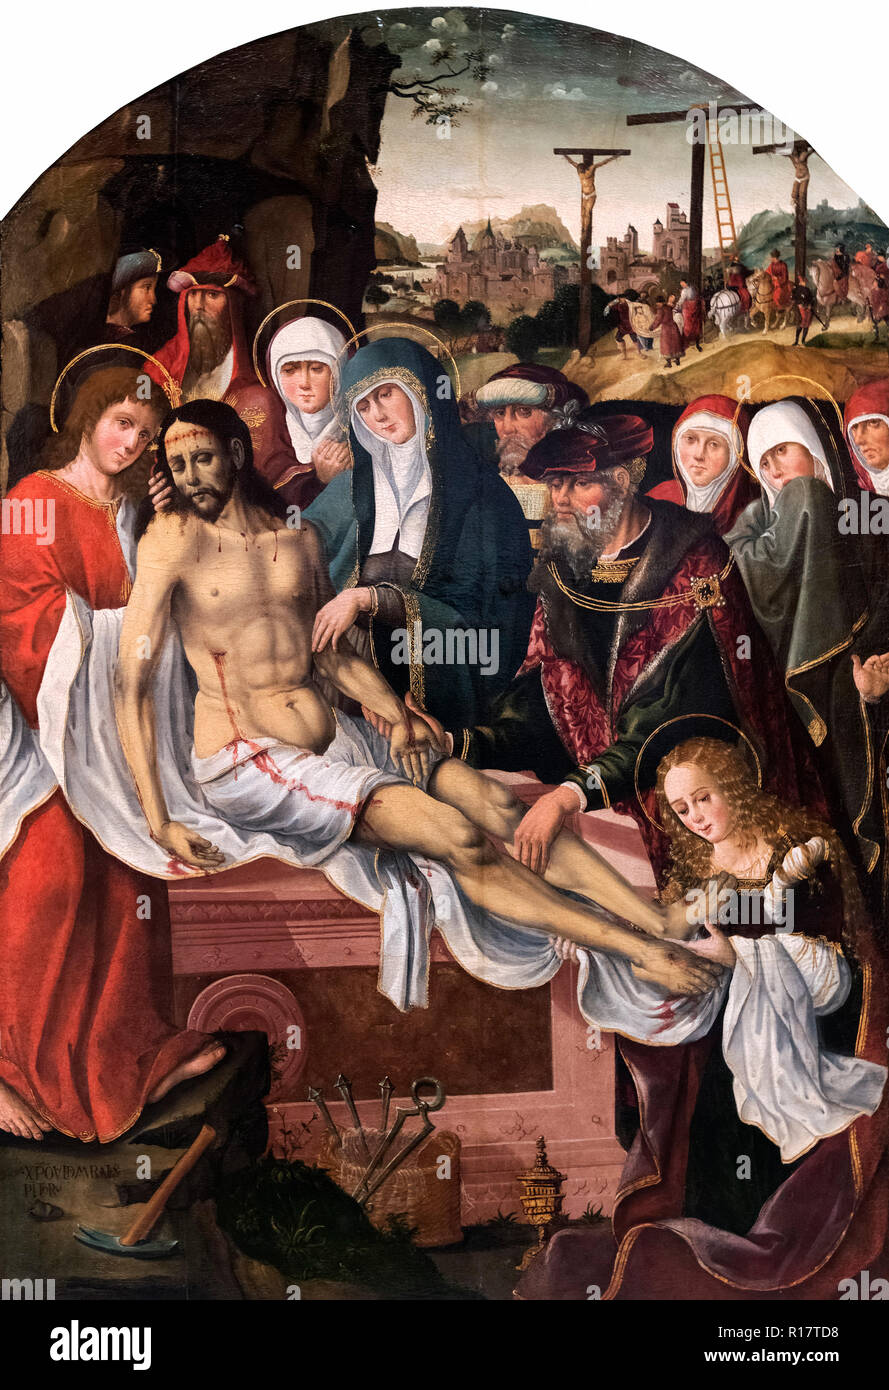 The Burial of Christ by Cristobal de Morales, c.1525. - Stock Image